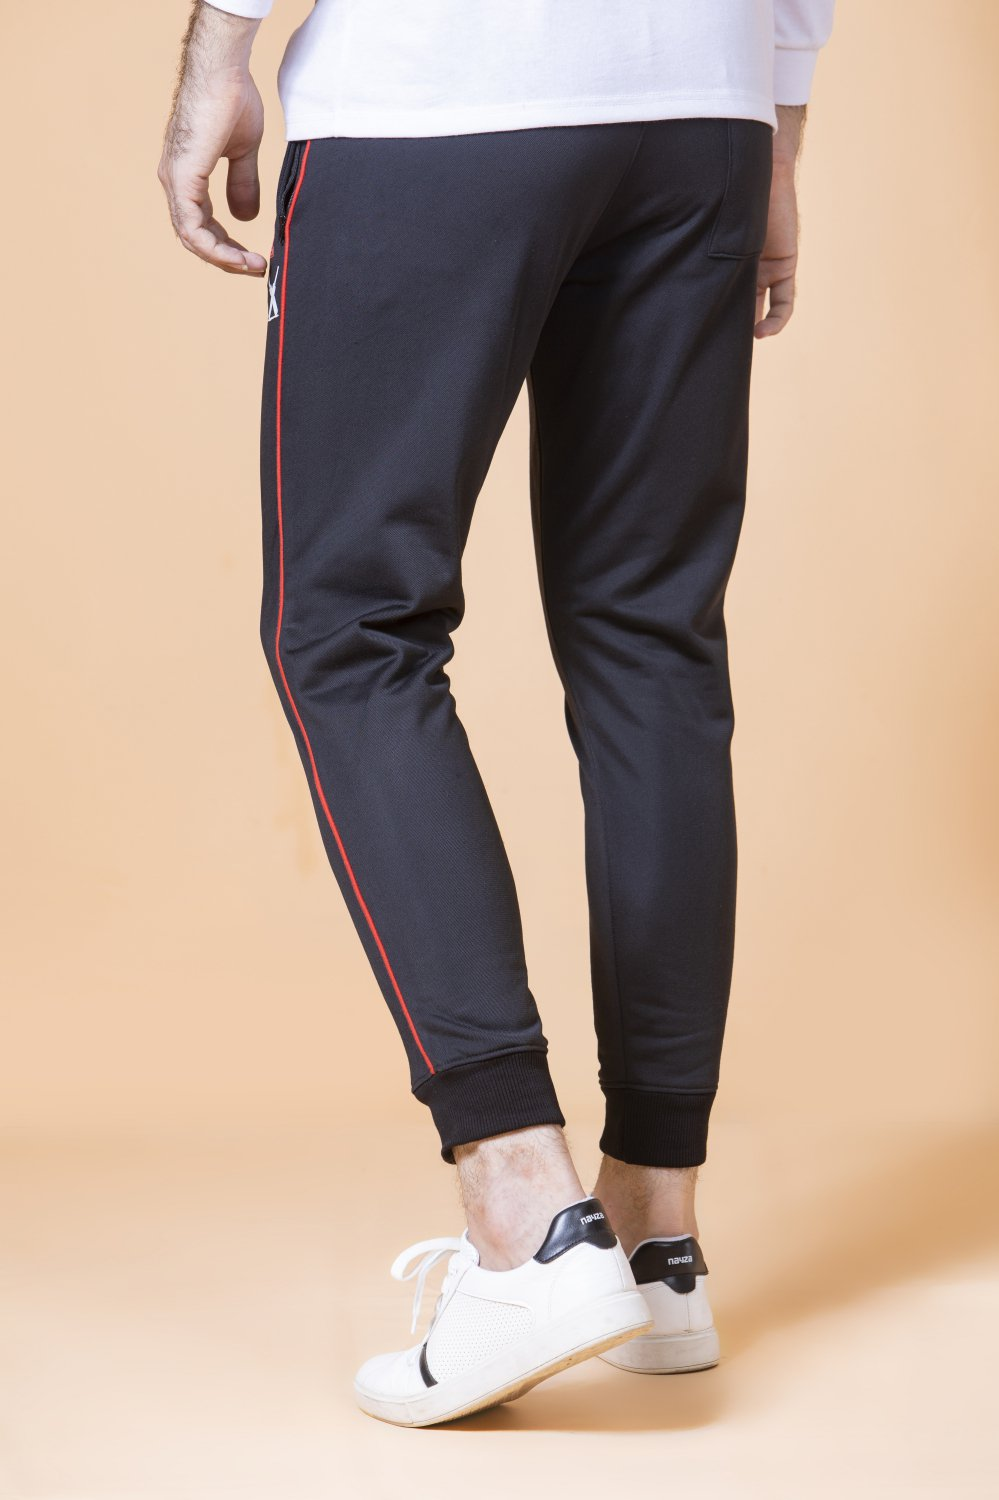 Navy Trouser HMKBF20011 - HOPE NOT OUT